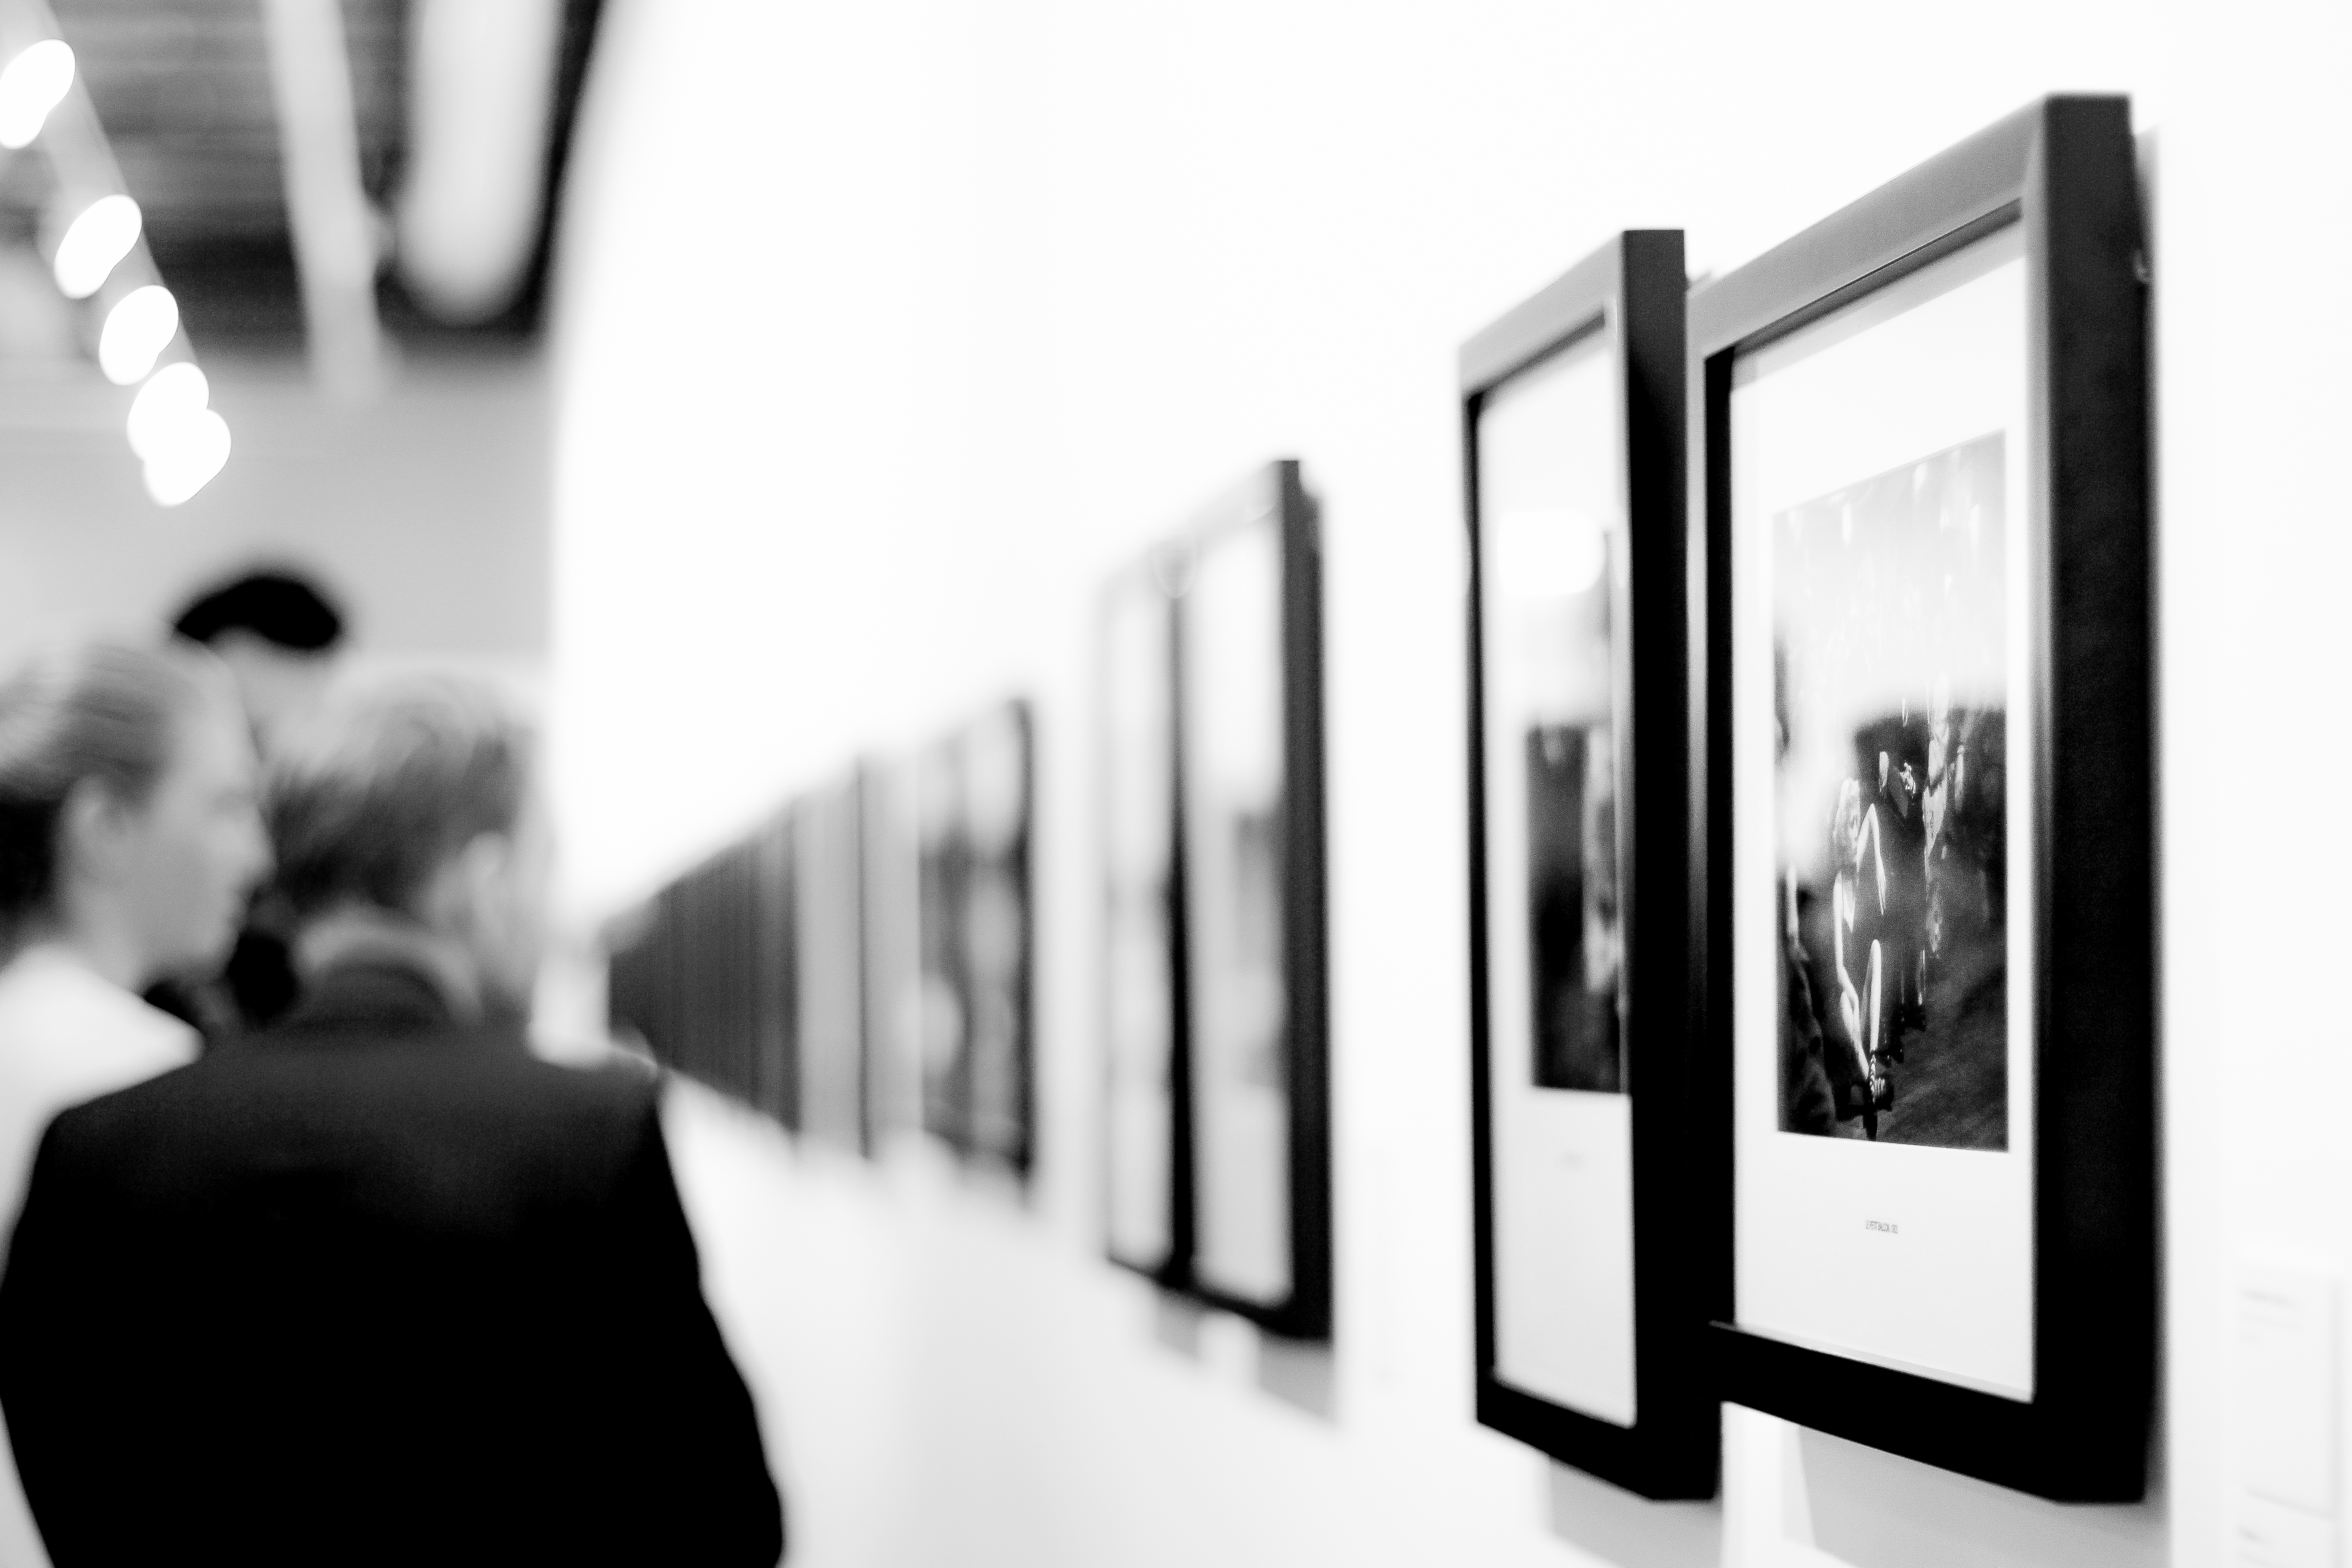 Photographystockphoto photographystockimages photographystock picture - Free Stock Photo Of Black And White People Art Museum